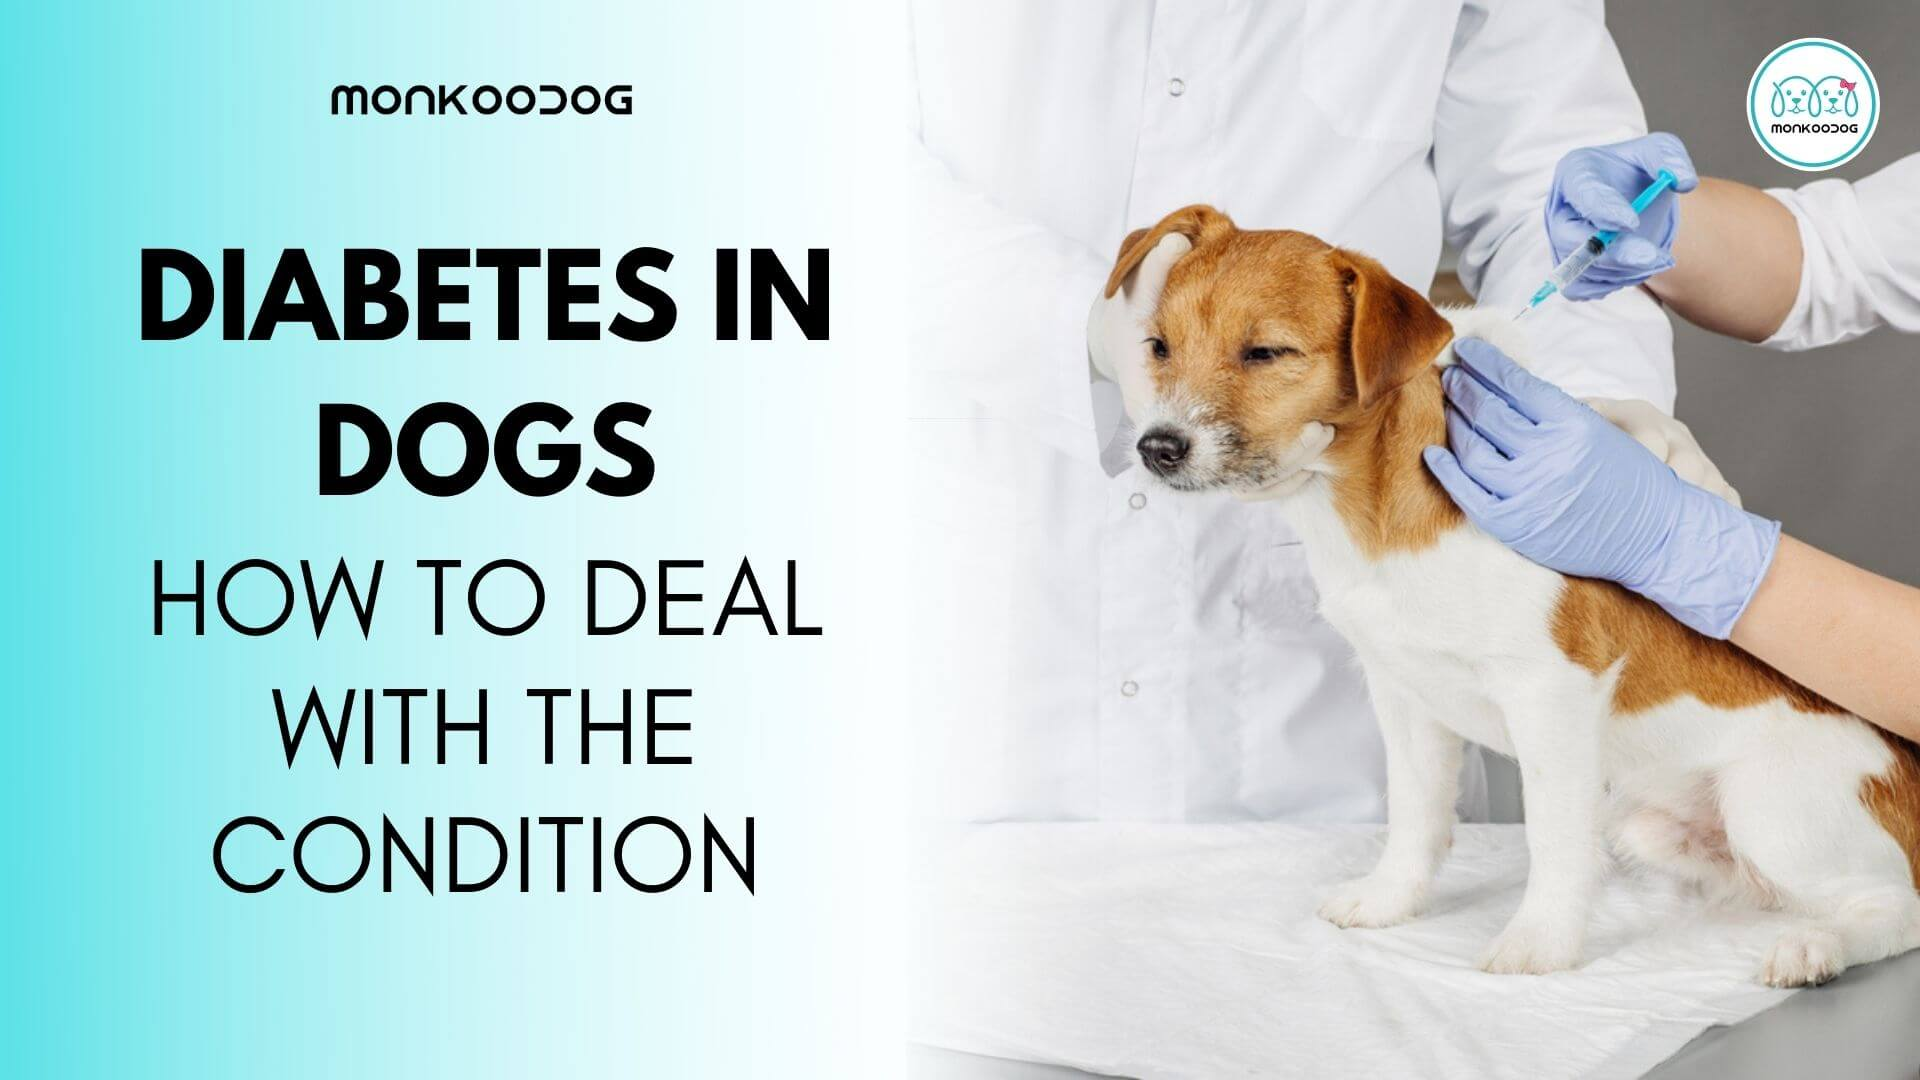 Dog Diabetes_ How To Deal With The Condition